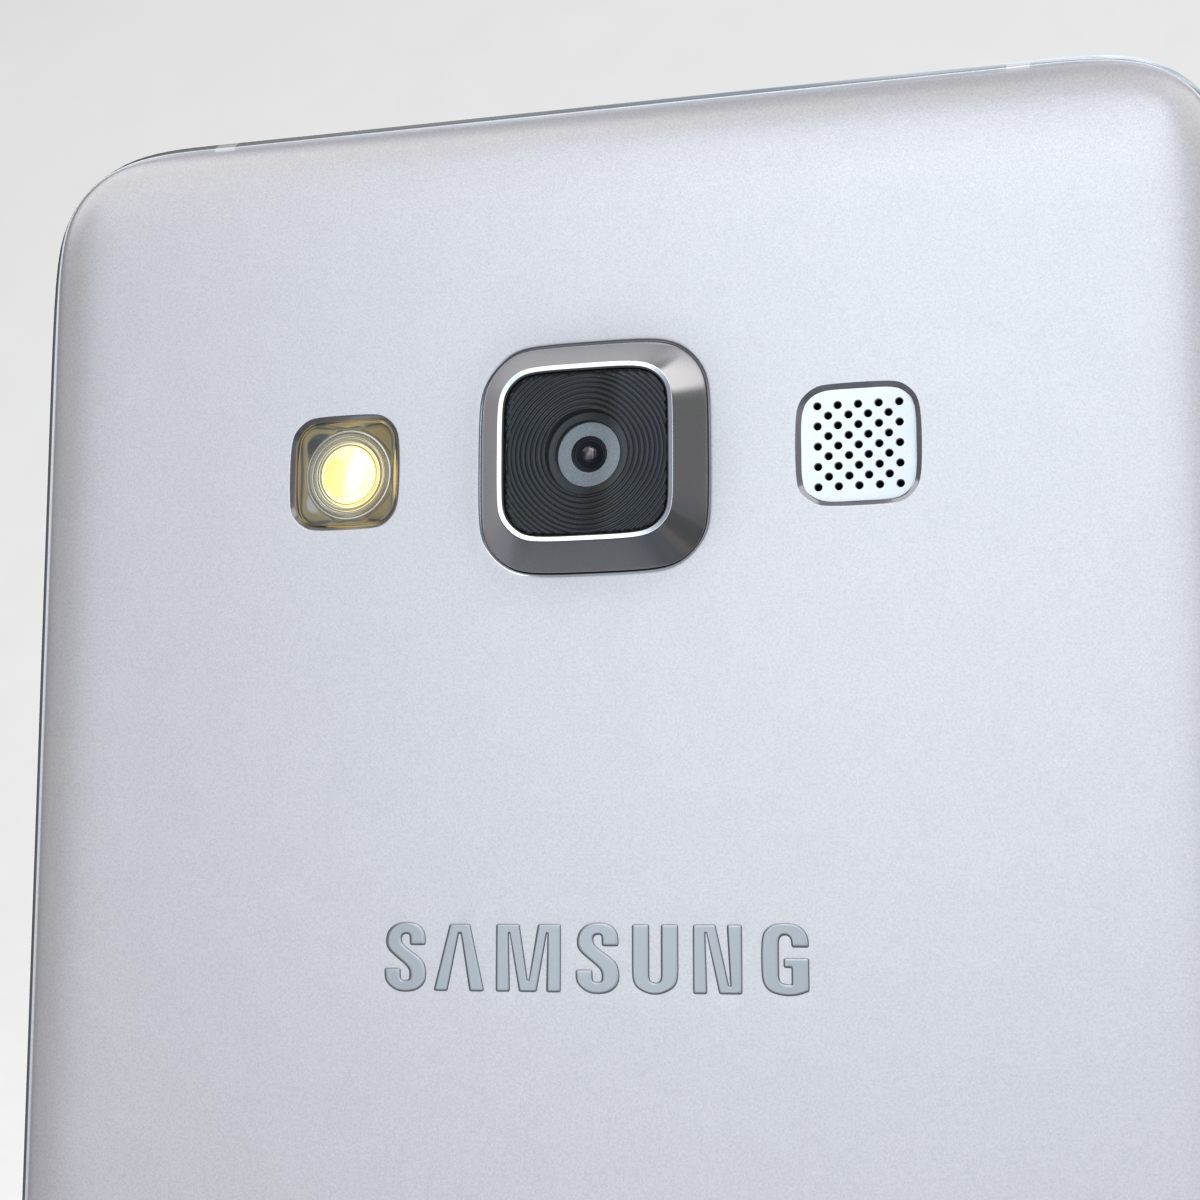 samsung galaxy a3 and a3 duos silver 3d model 3ds max fbx c4d obj 208320